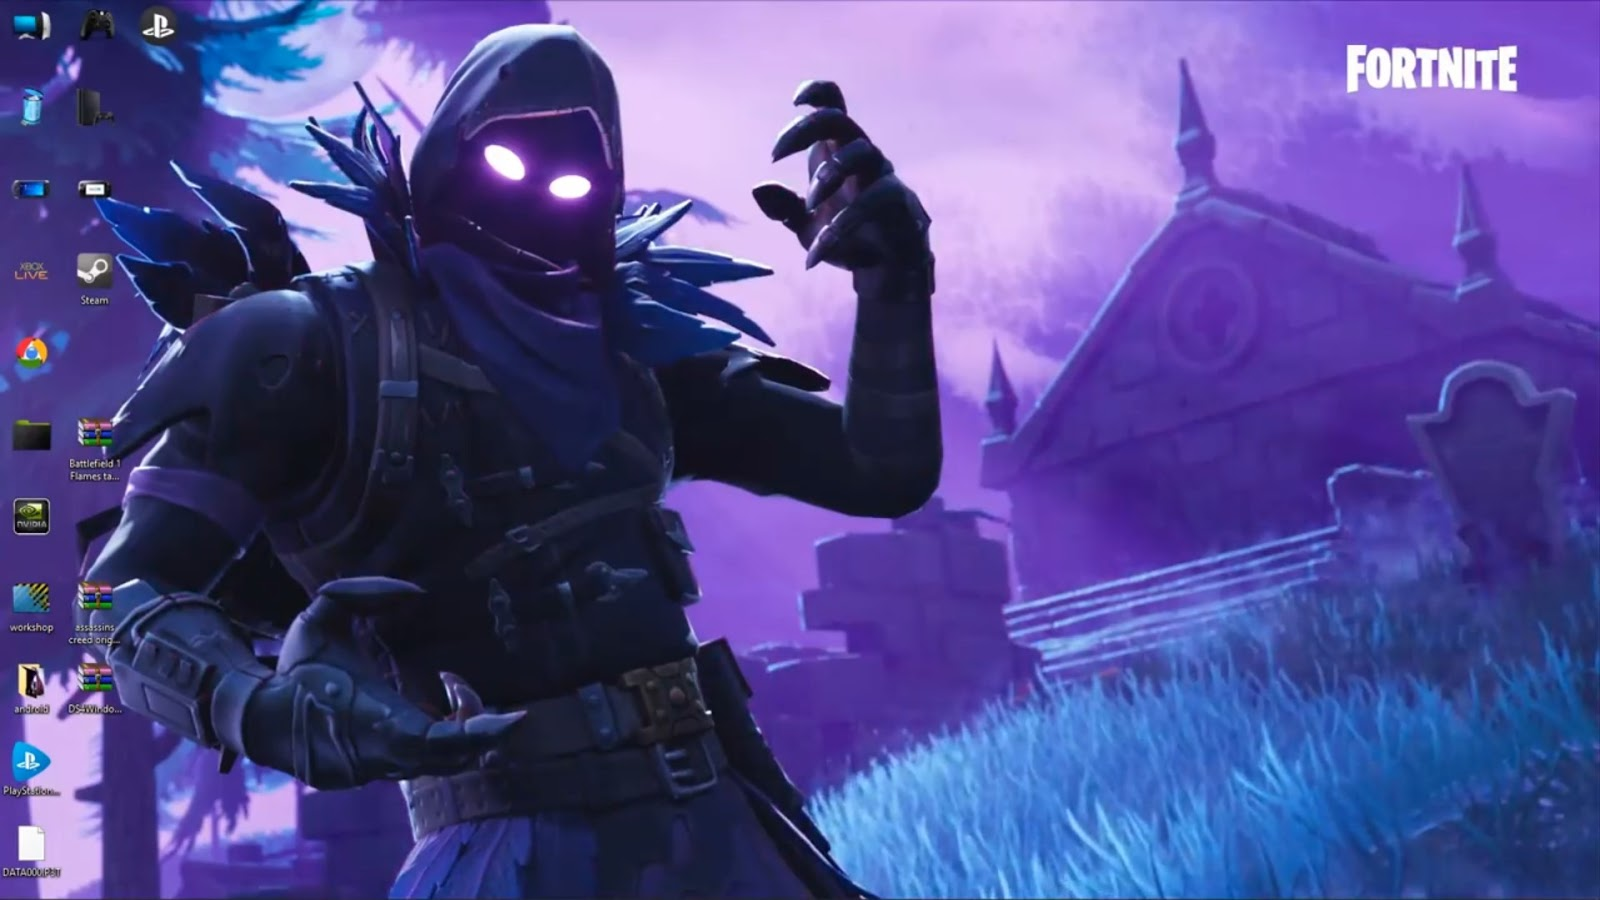 wallpaper engine Fortnite Raven free download - wallpaper engine